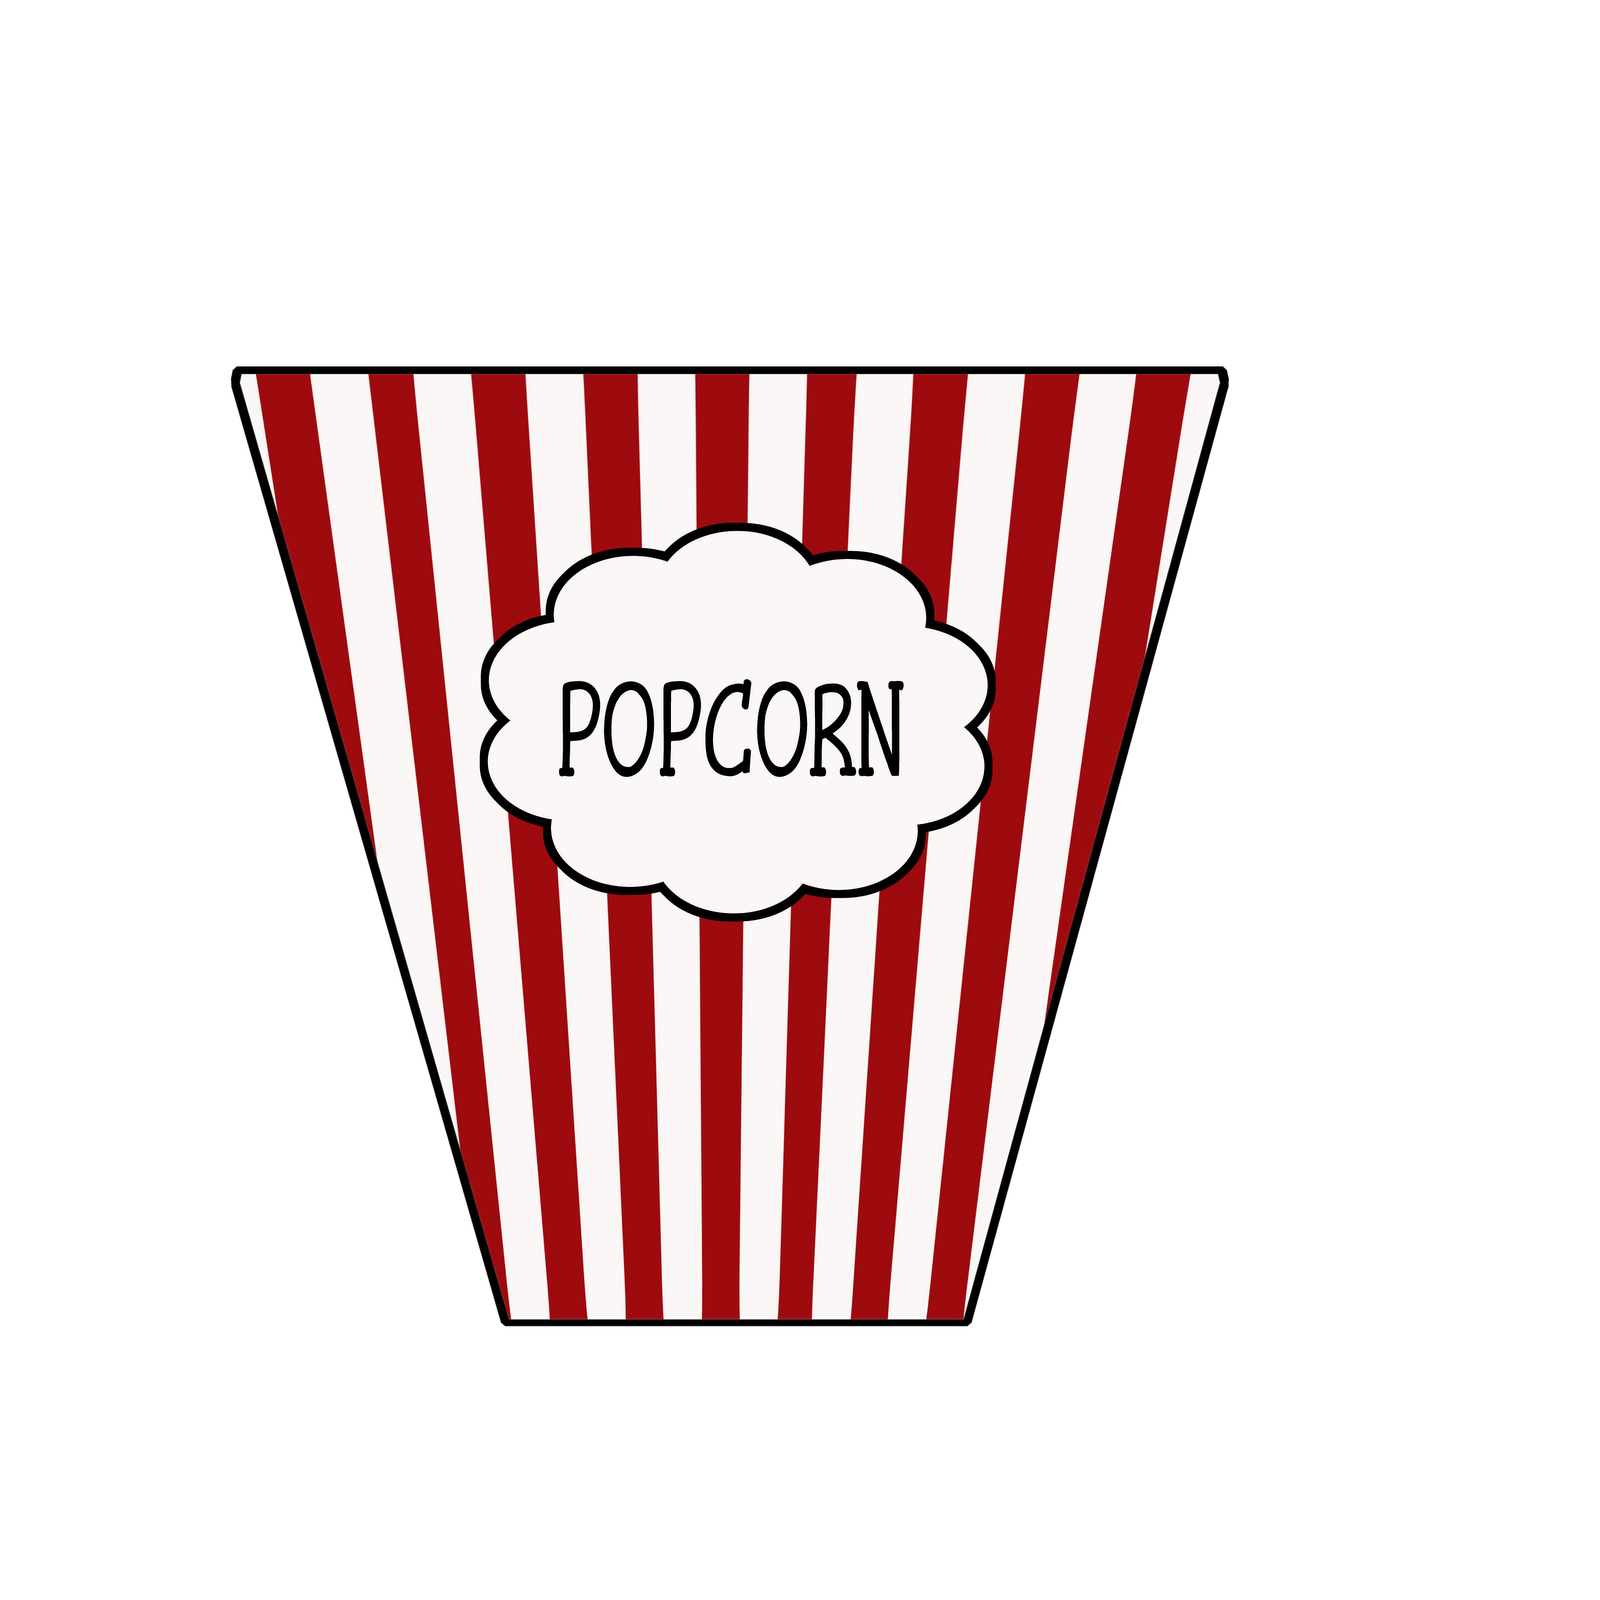 1600x1600 Popcorn Black And White Popcorn Bucket Clipart